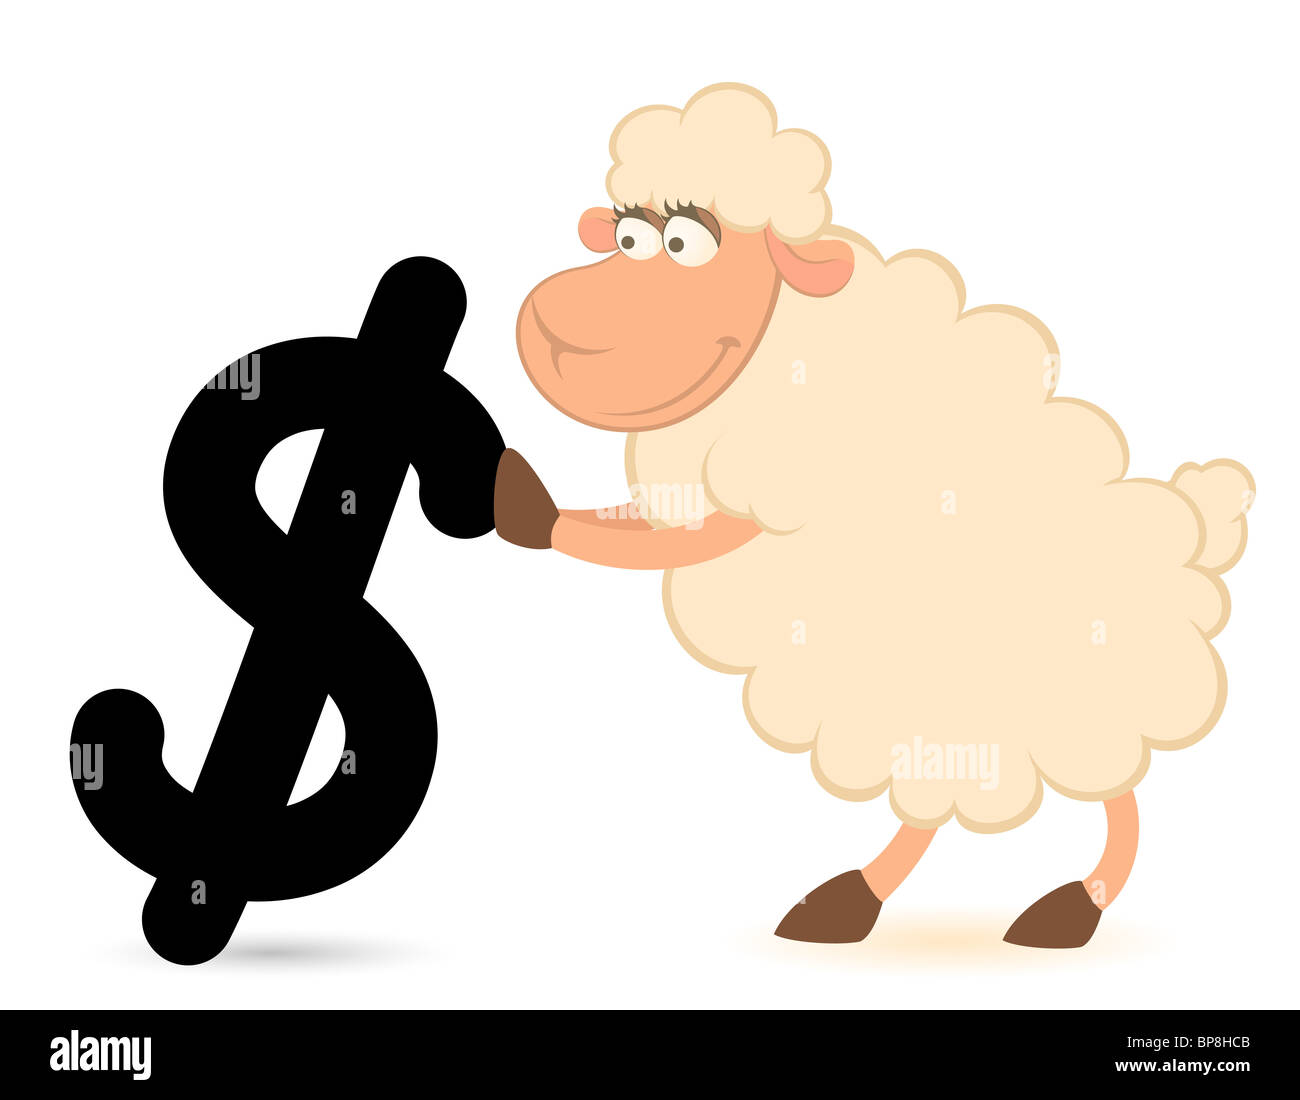 cartoon sheep with the sign of dollar on a white background - Stock Image